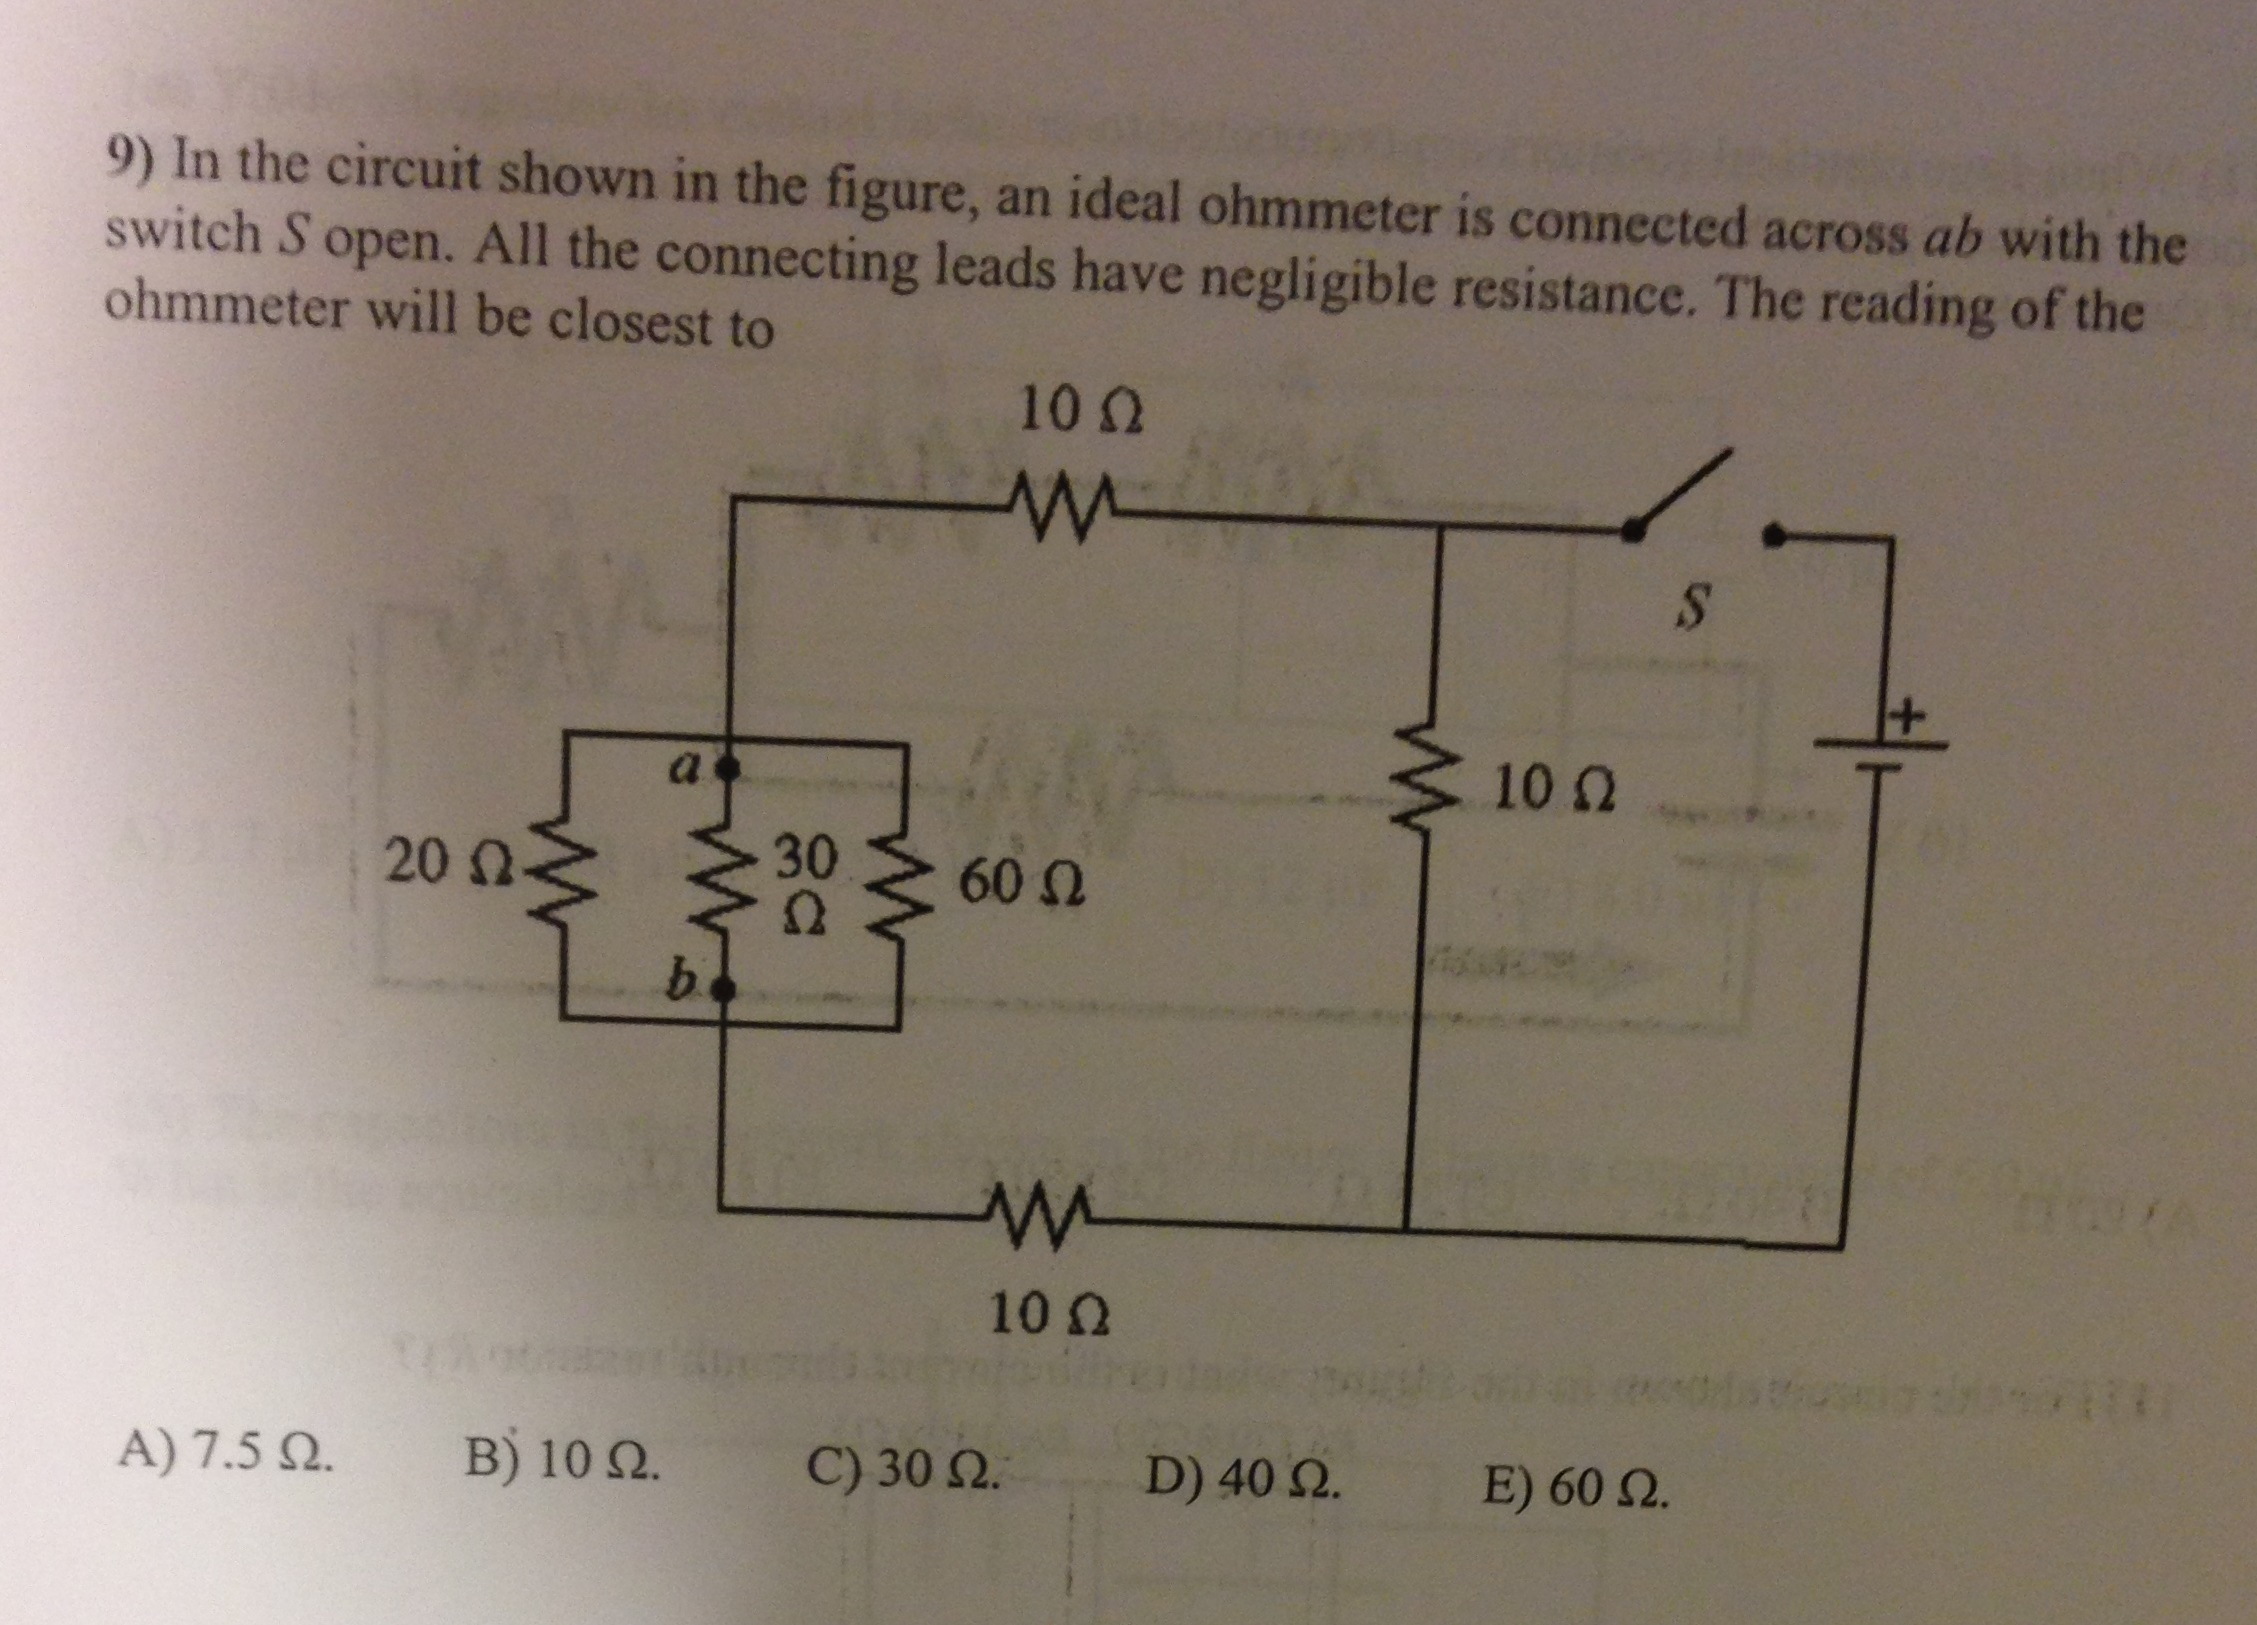 Solved: In The Circuit Shown In The Figure, An Ideal Ohmme ... for Ohmmeter Drawing  59nar